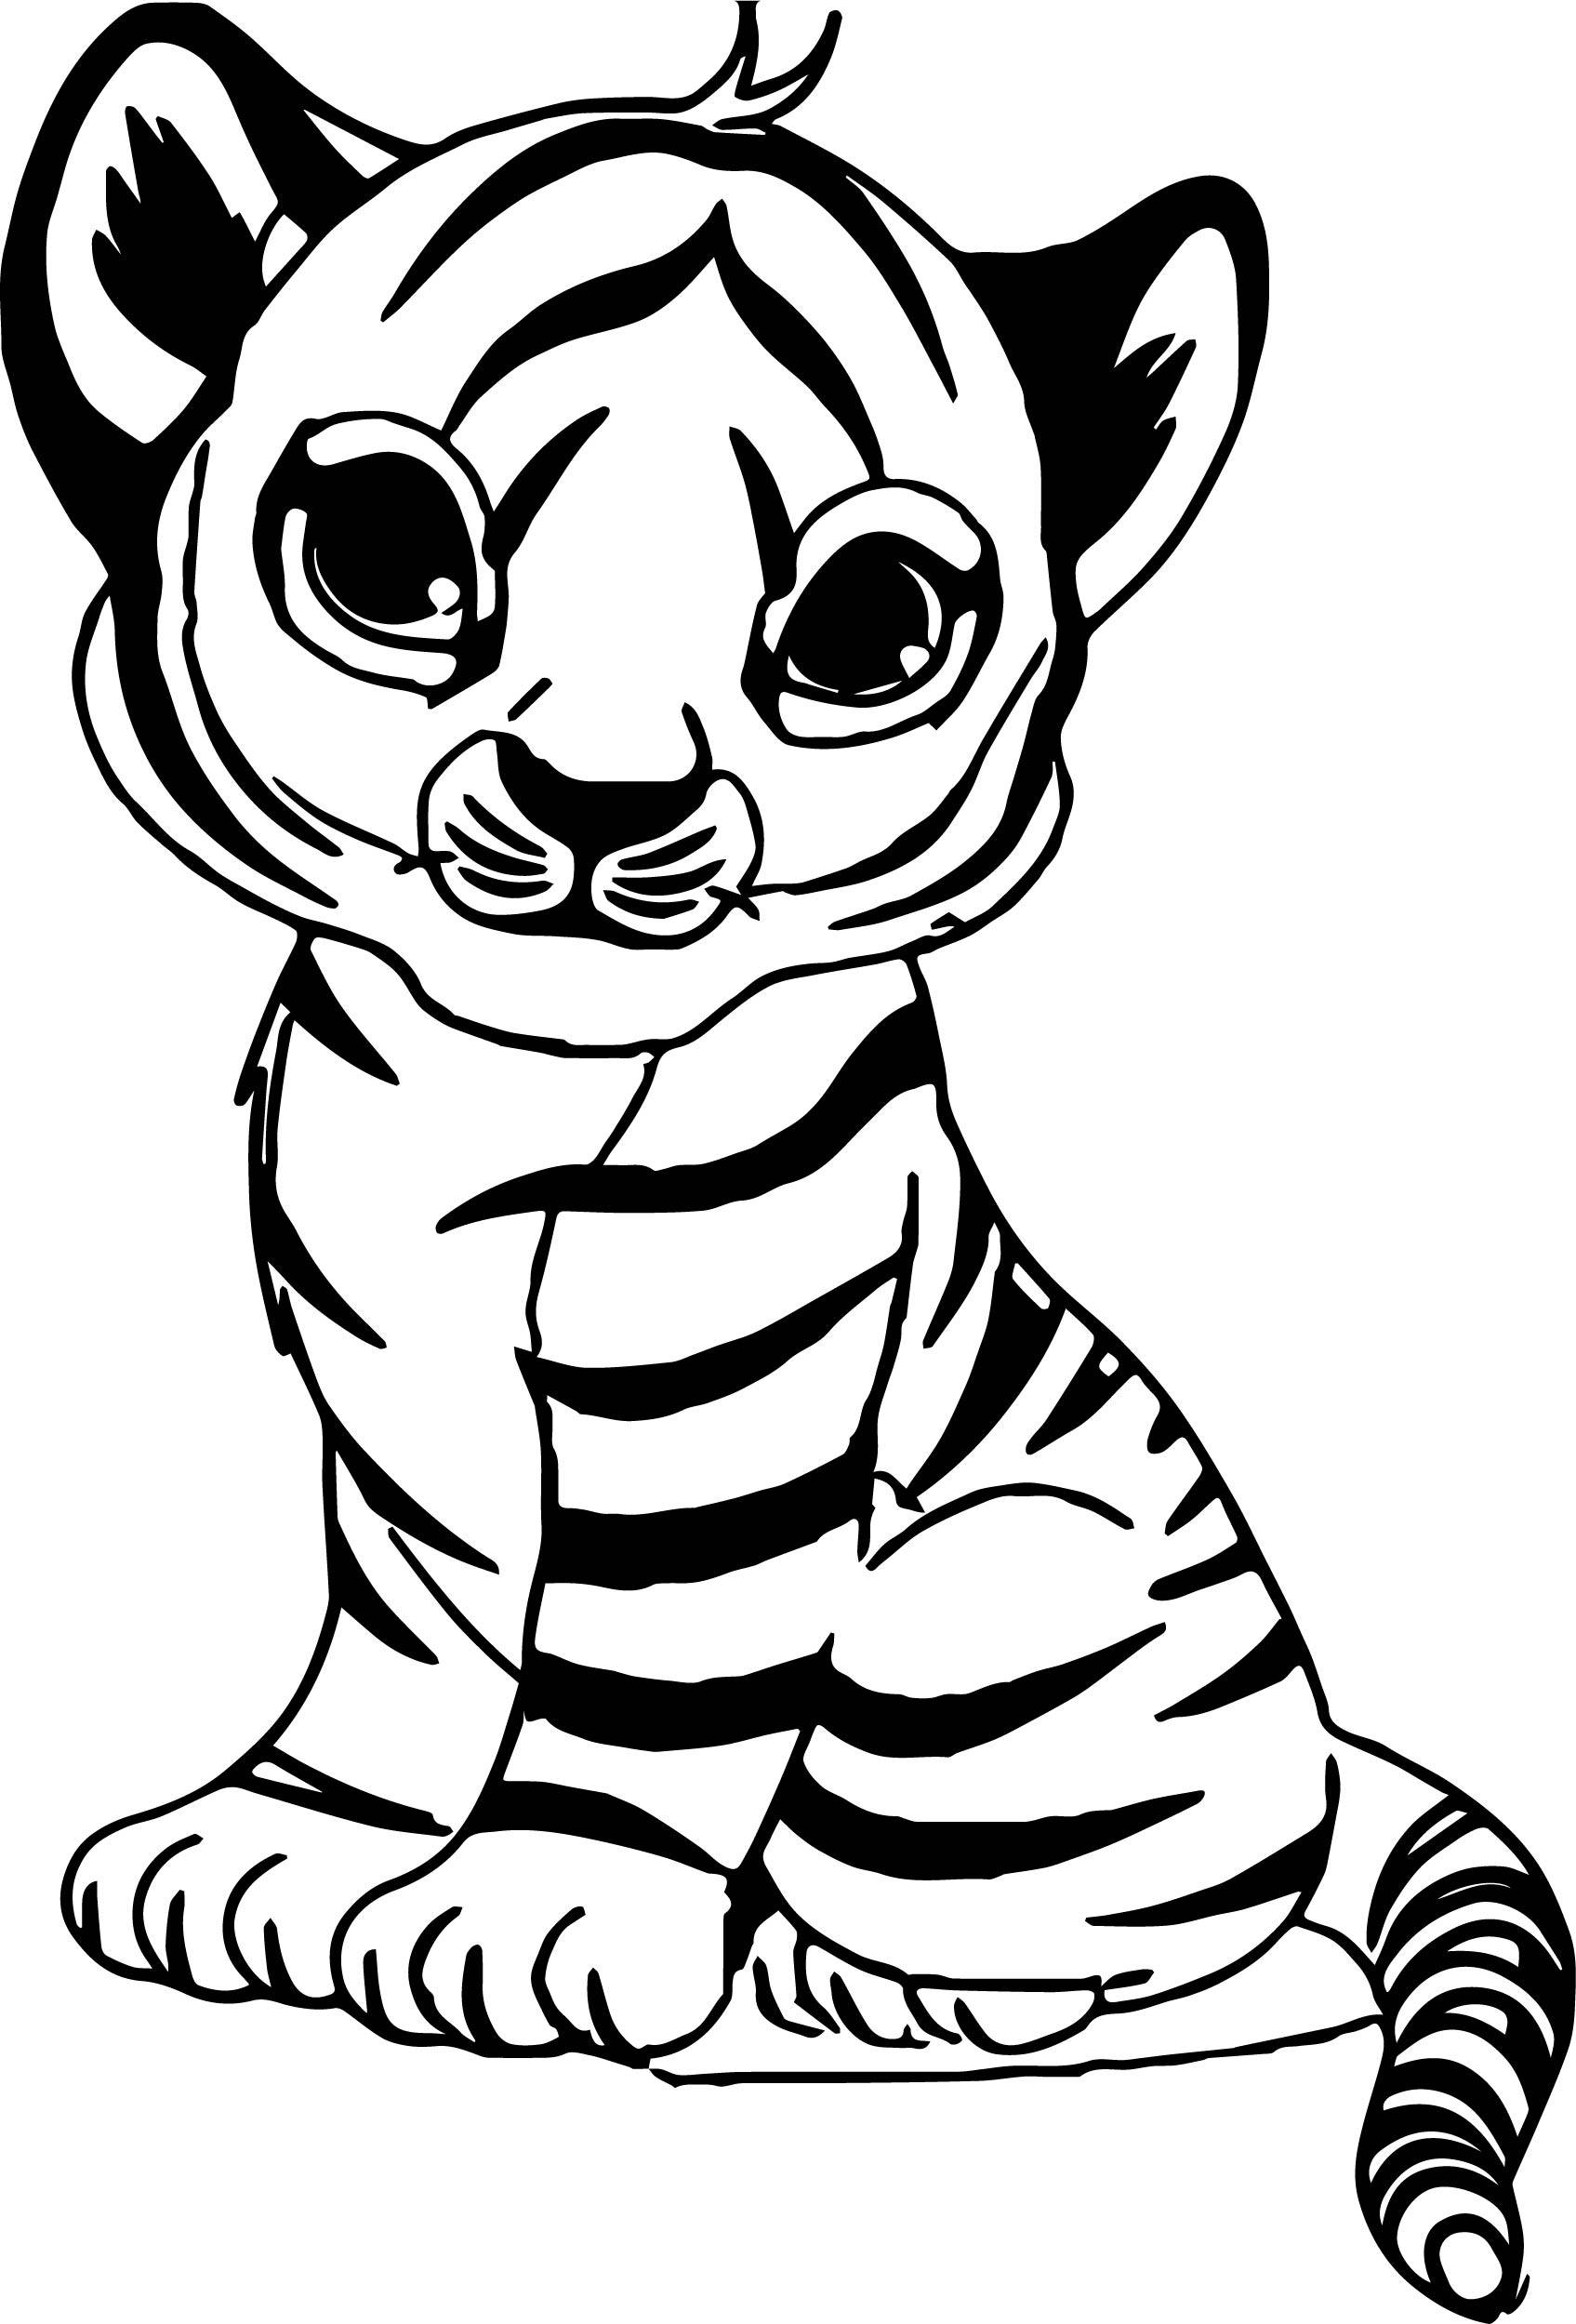 coloring page of tiger tiger coloring page free printable coloring pages of coloring page tiger